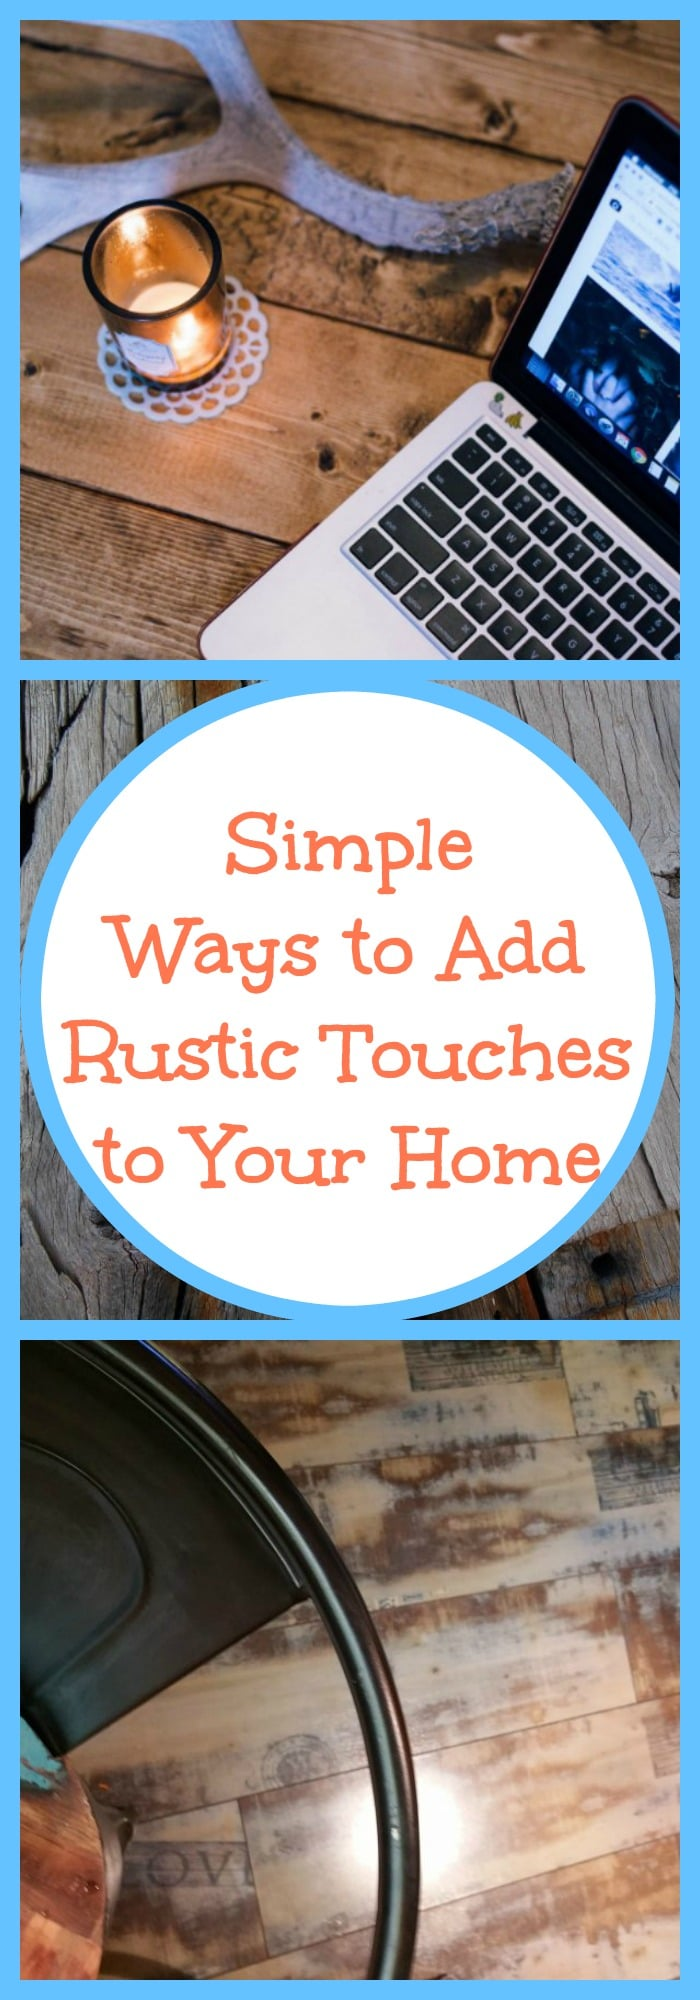 Simple Ways to Add Rustic Touches to Your Home